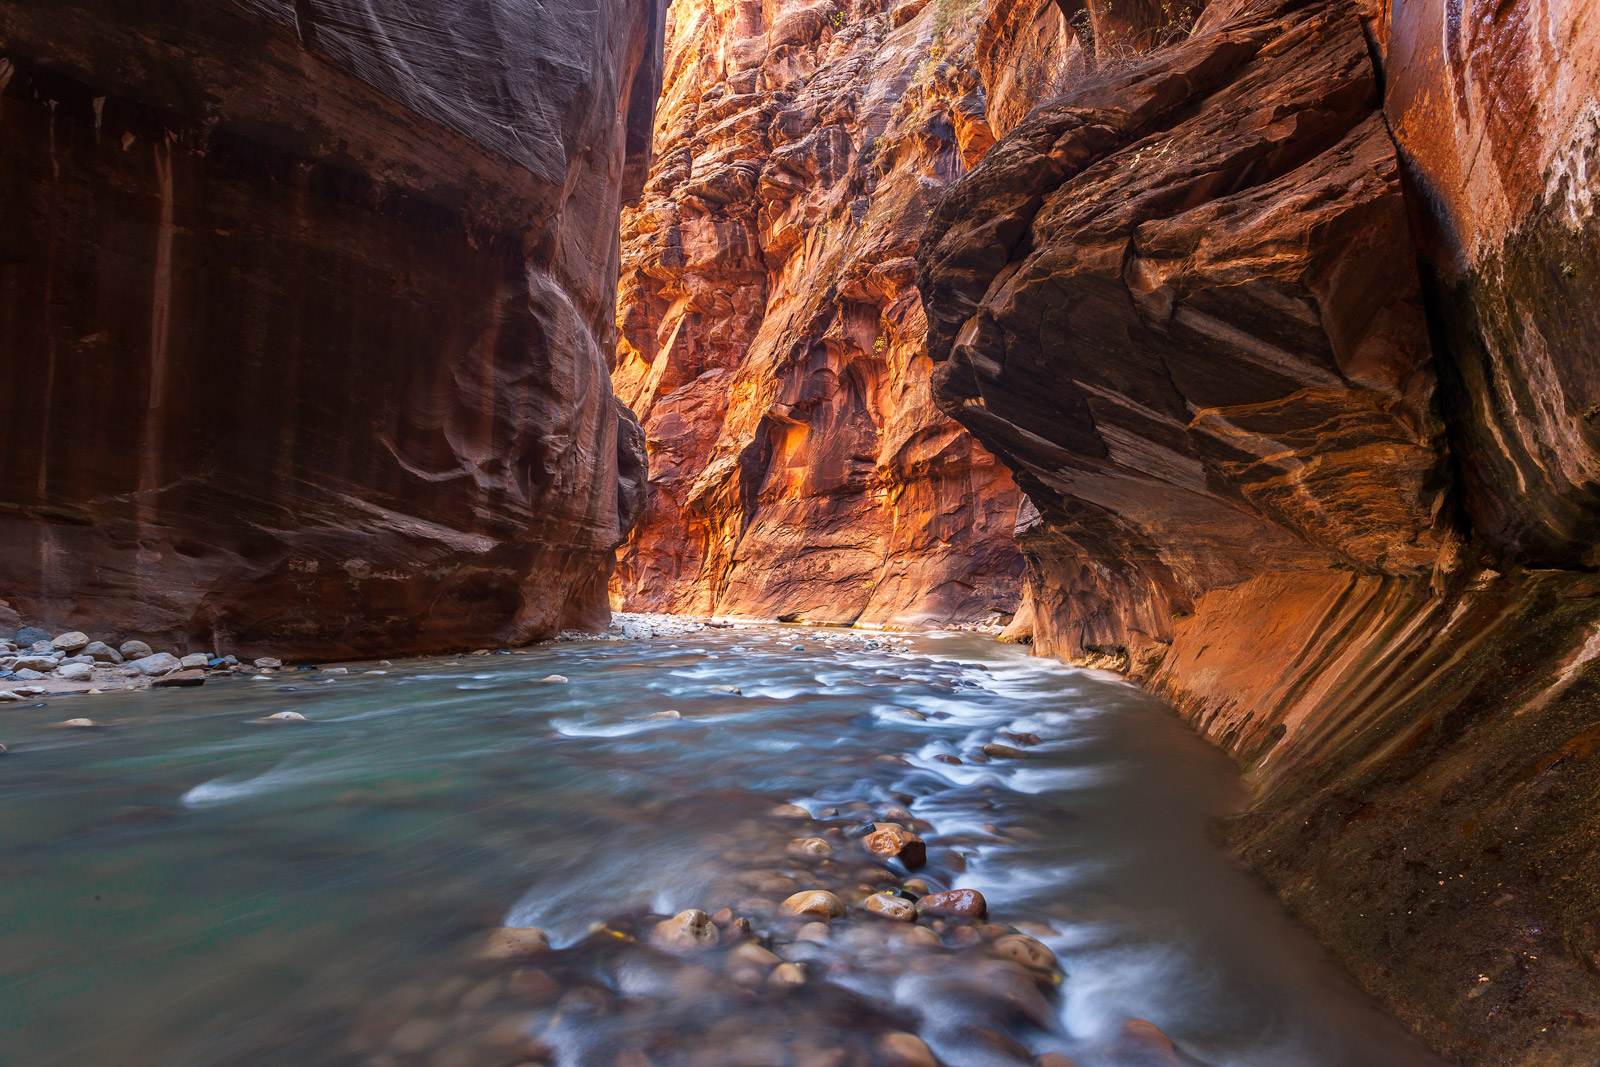 A Limited Edition, Fine Art photograph of The Narrows with overhanging rock walls on a bend in the Virgin River in Zion National...